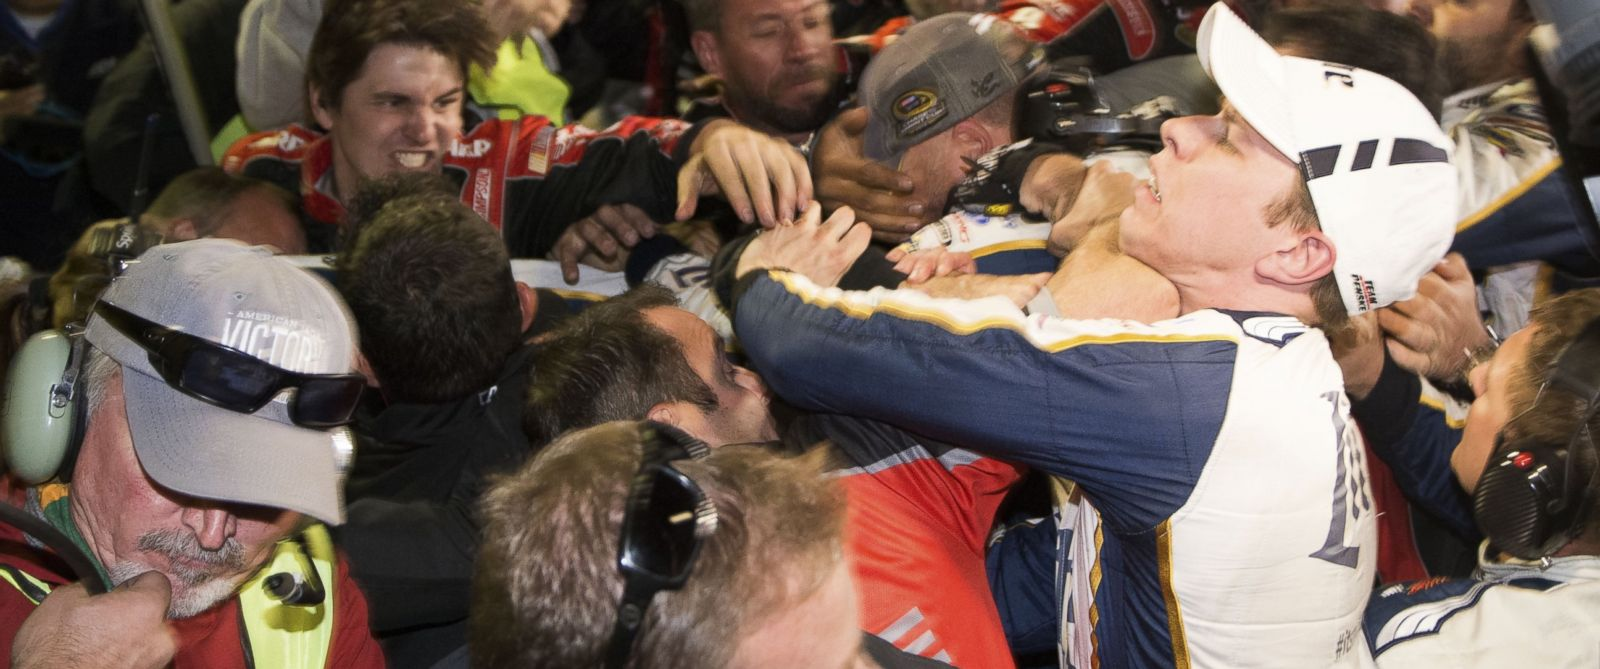 PHOTO: Brad Keselowski, right, is punched during a fight after the NASCAR Sprint Cup Series auto race at Texas Motor Speedway in Fort Worth, Texas, Nov. 2, 2014.